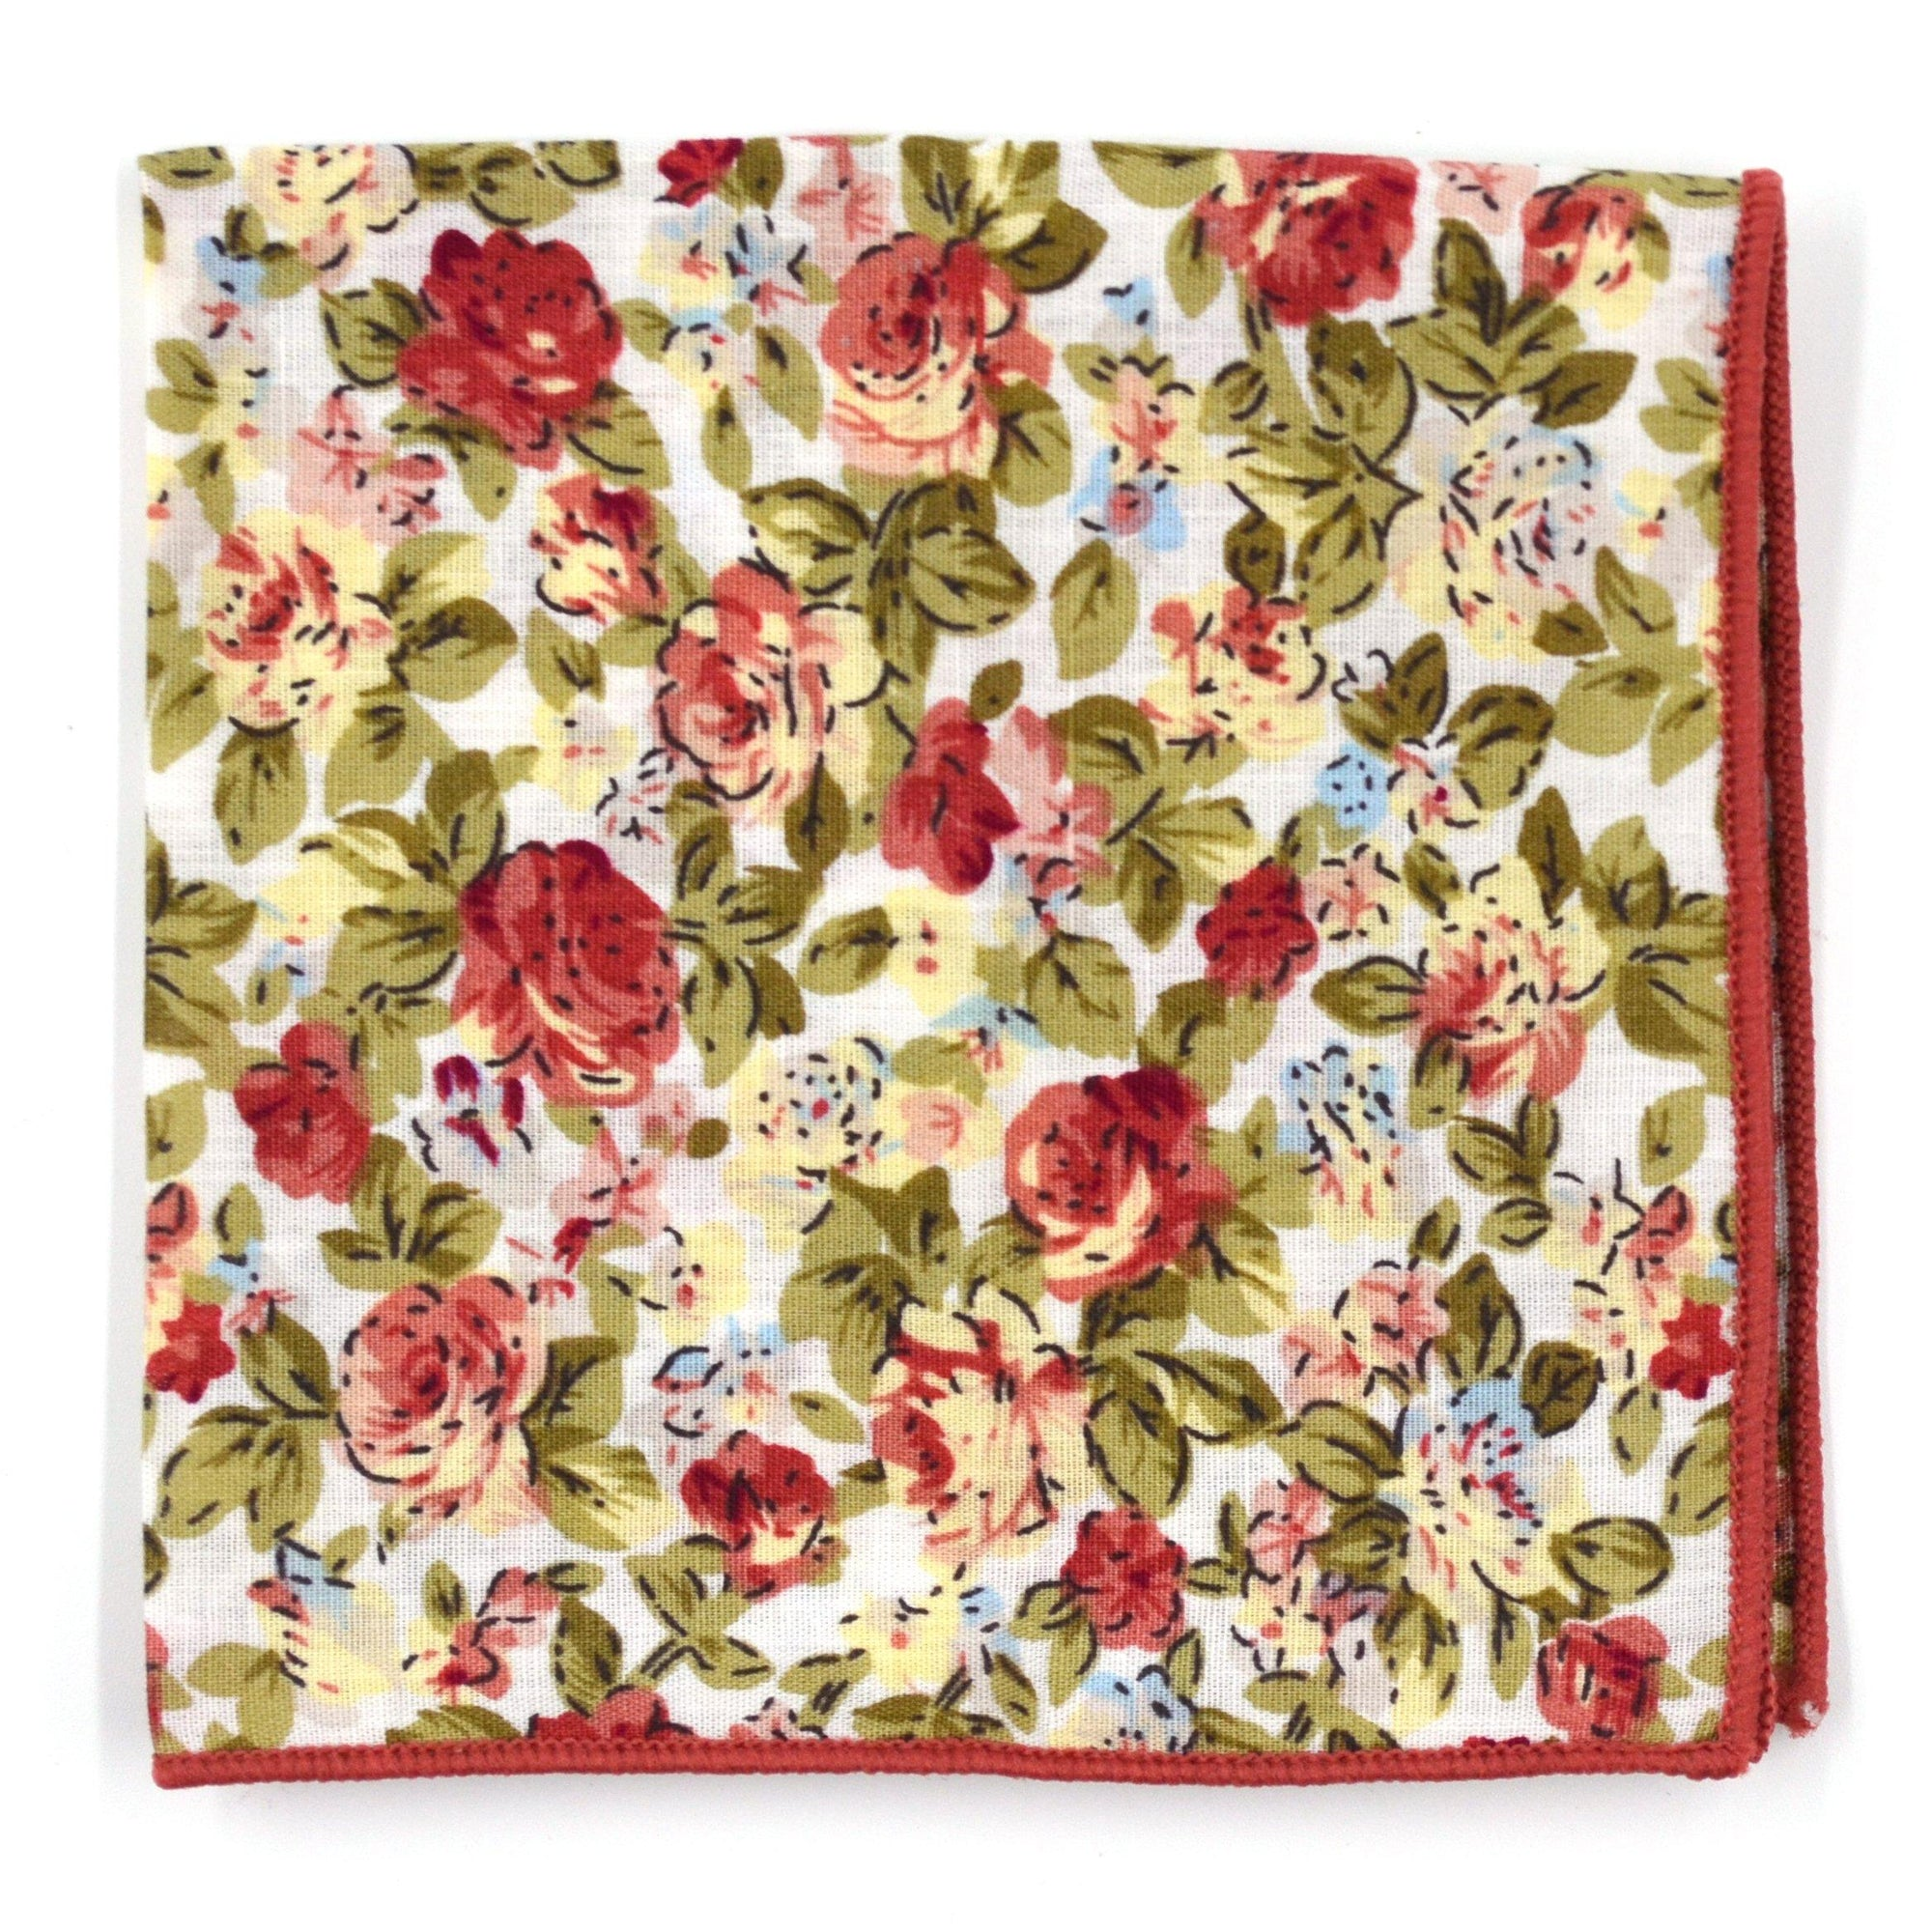 Pocket Square - Floral Camellia Pocket Square